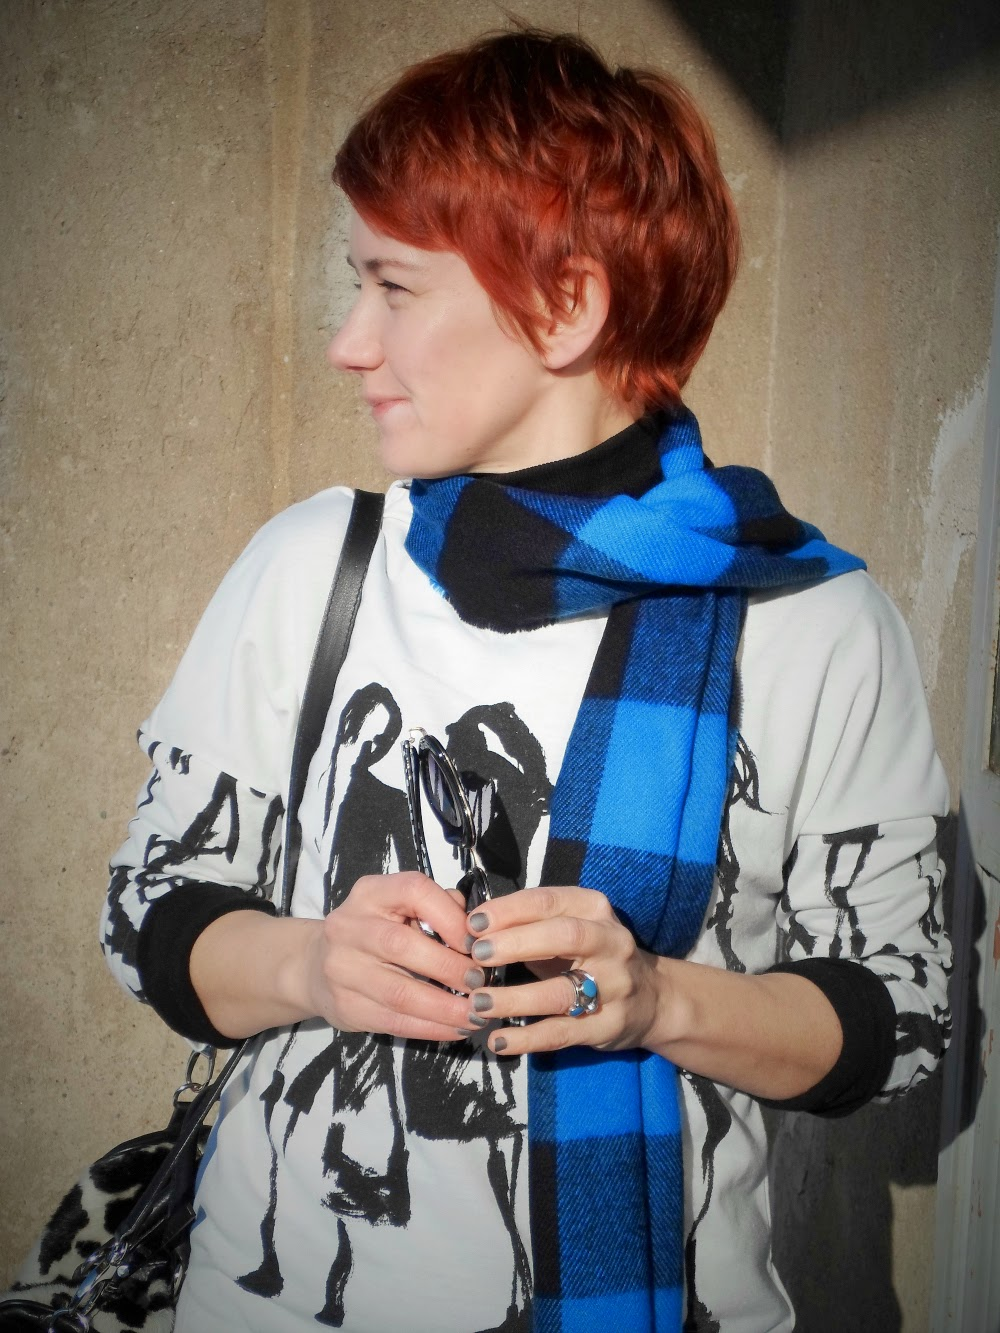 Graffiti sweater, plaid scarf, a smile and short red hair; Funky Jungle